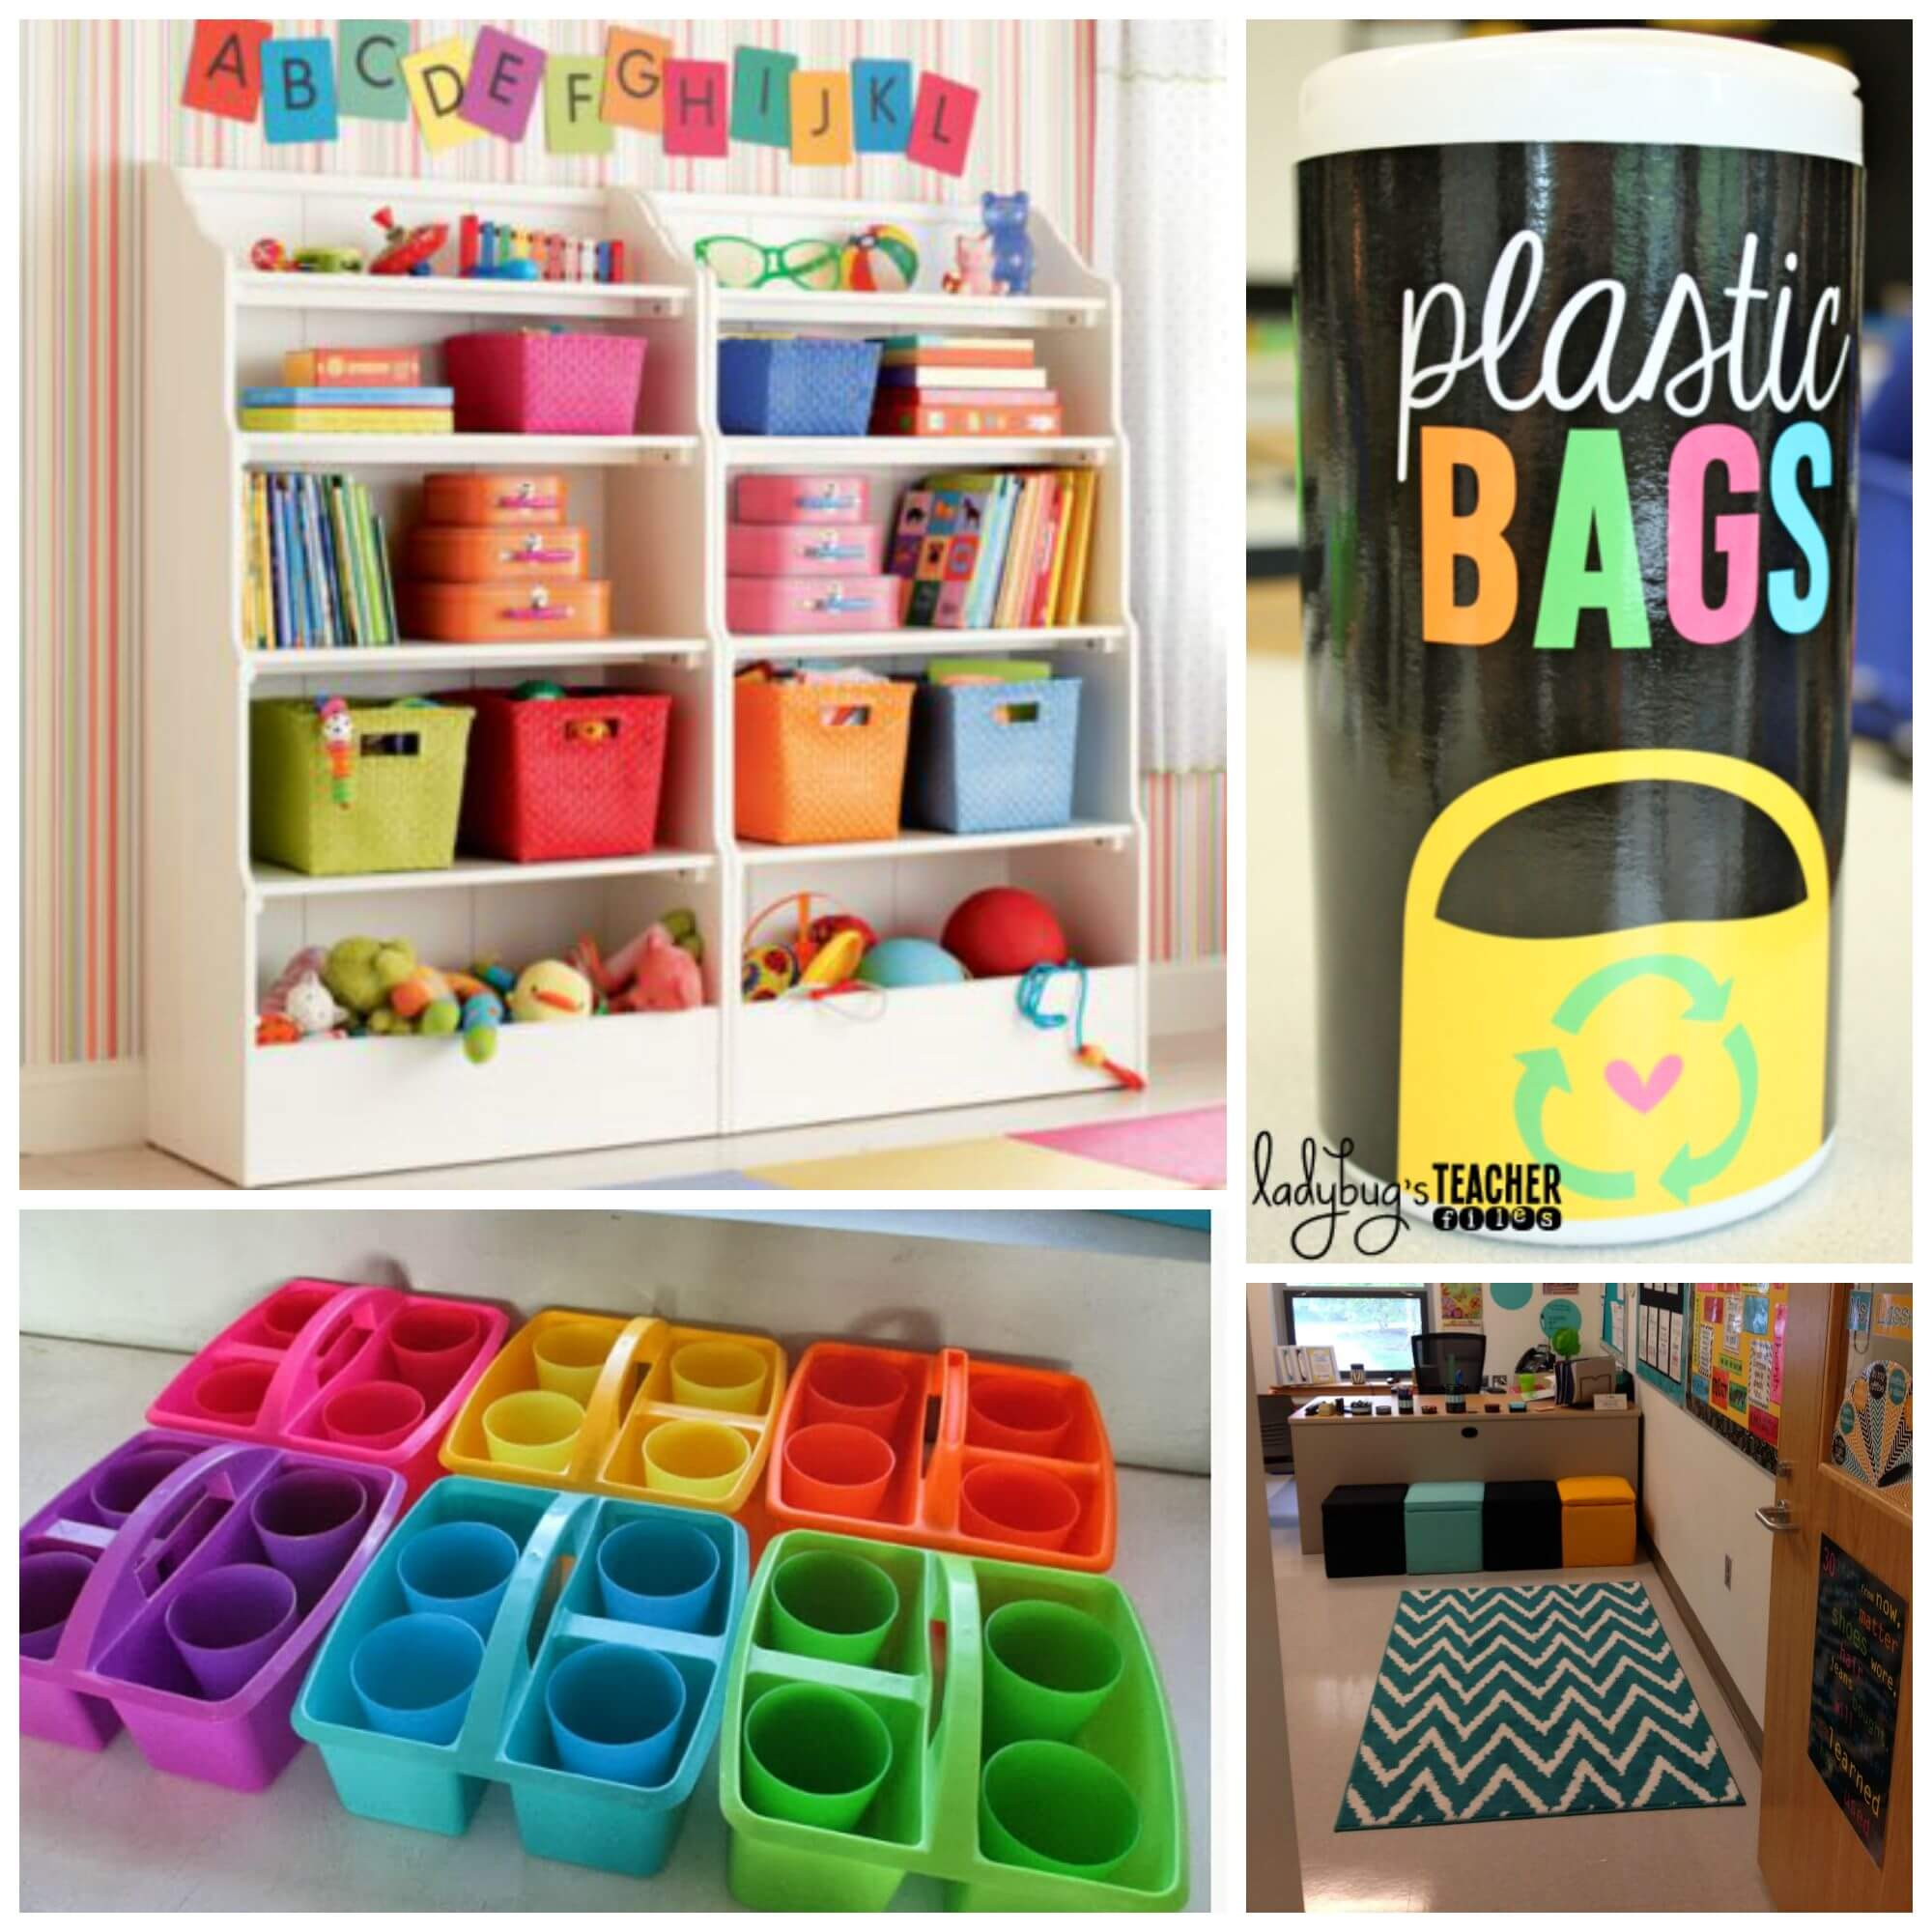 Teaching Ideas In The Classroom ~ Inspiring classroom decoration ideas playdough to plato